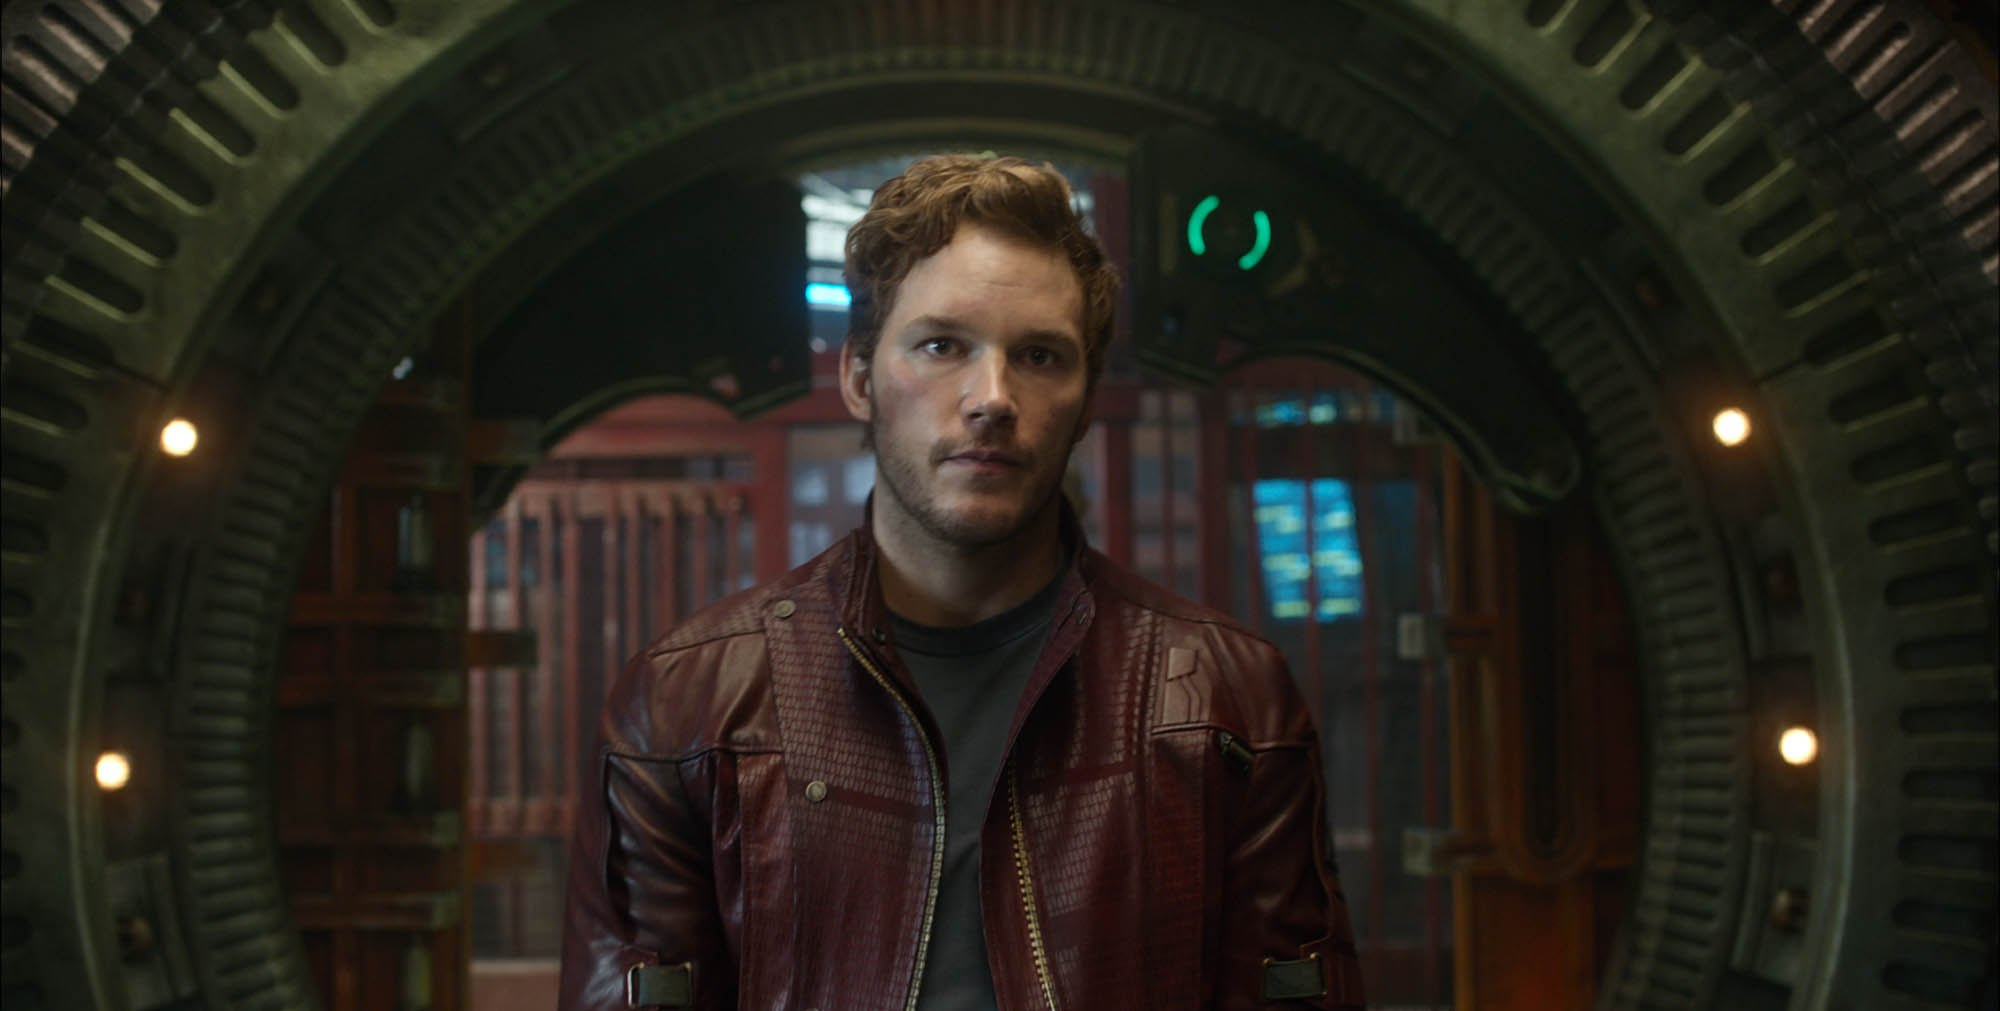 Star-lord Backgrounds, Compatible - PC, Mobile, Gadgets| 2000x1011 px